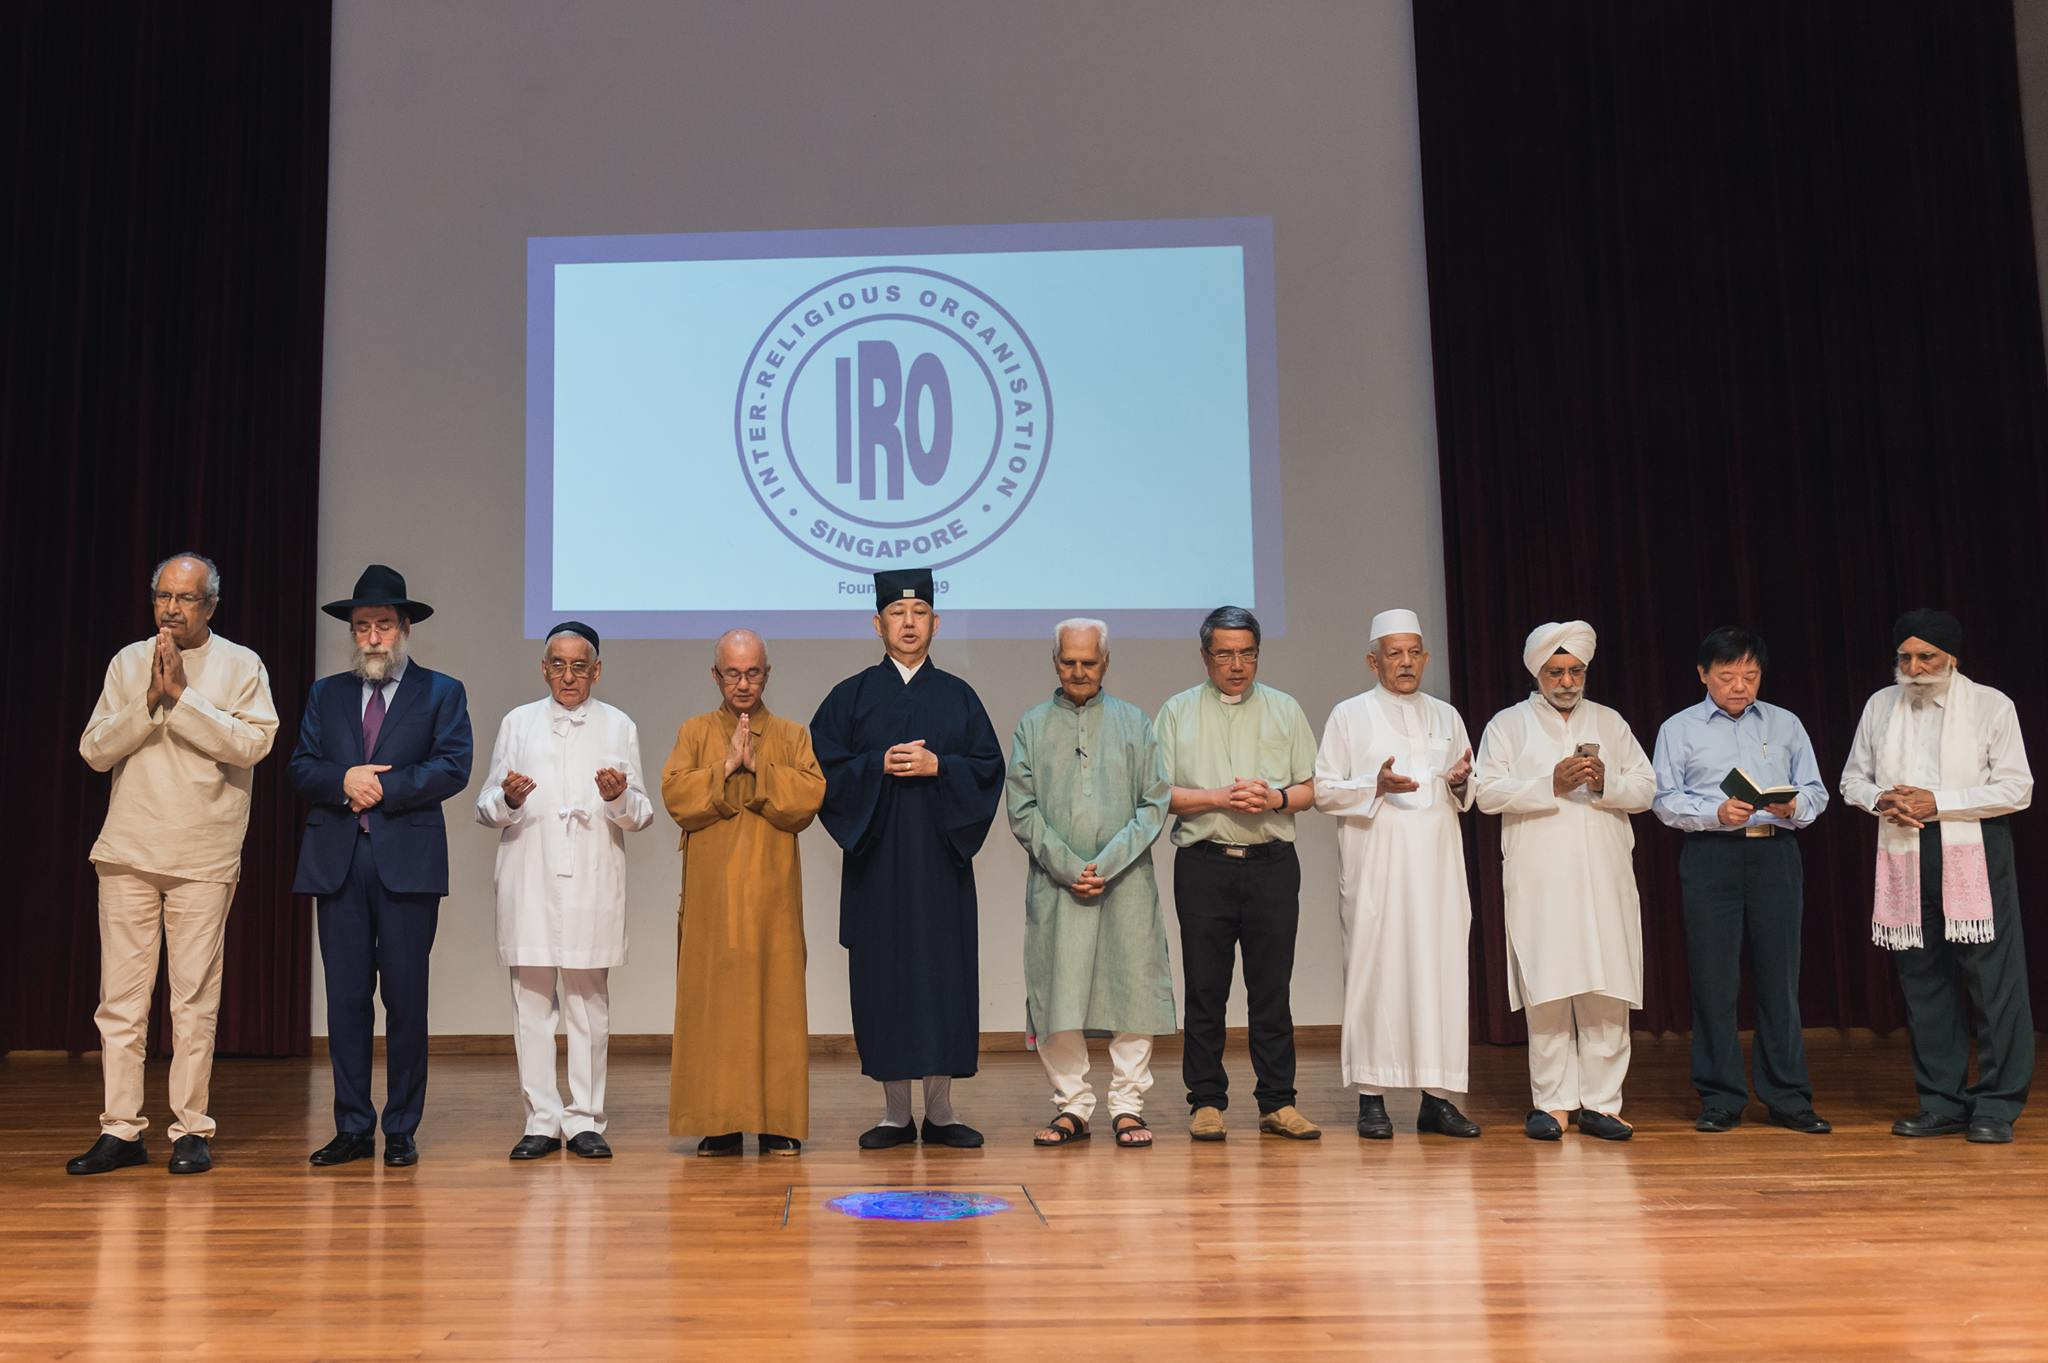 Photo courtesy: Inter-Religious Organisation, Singapore